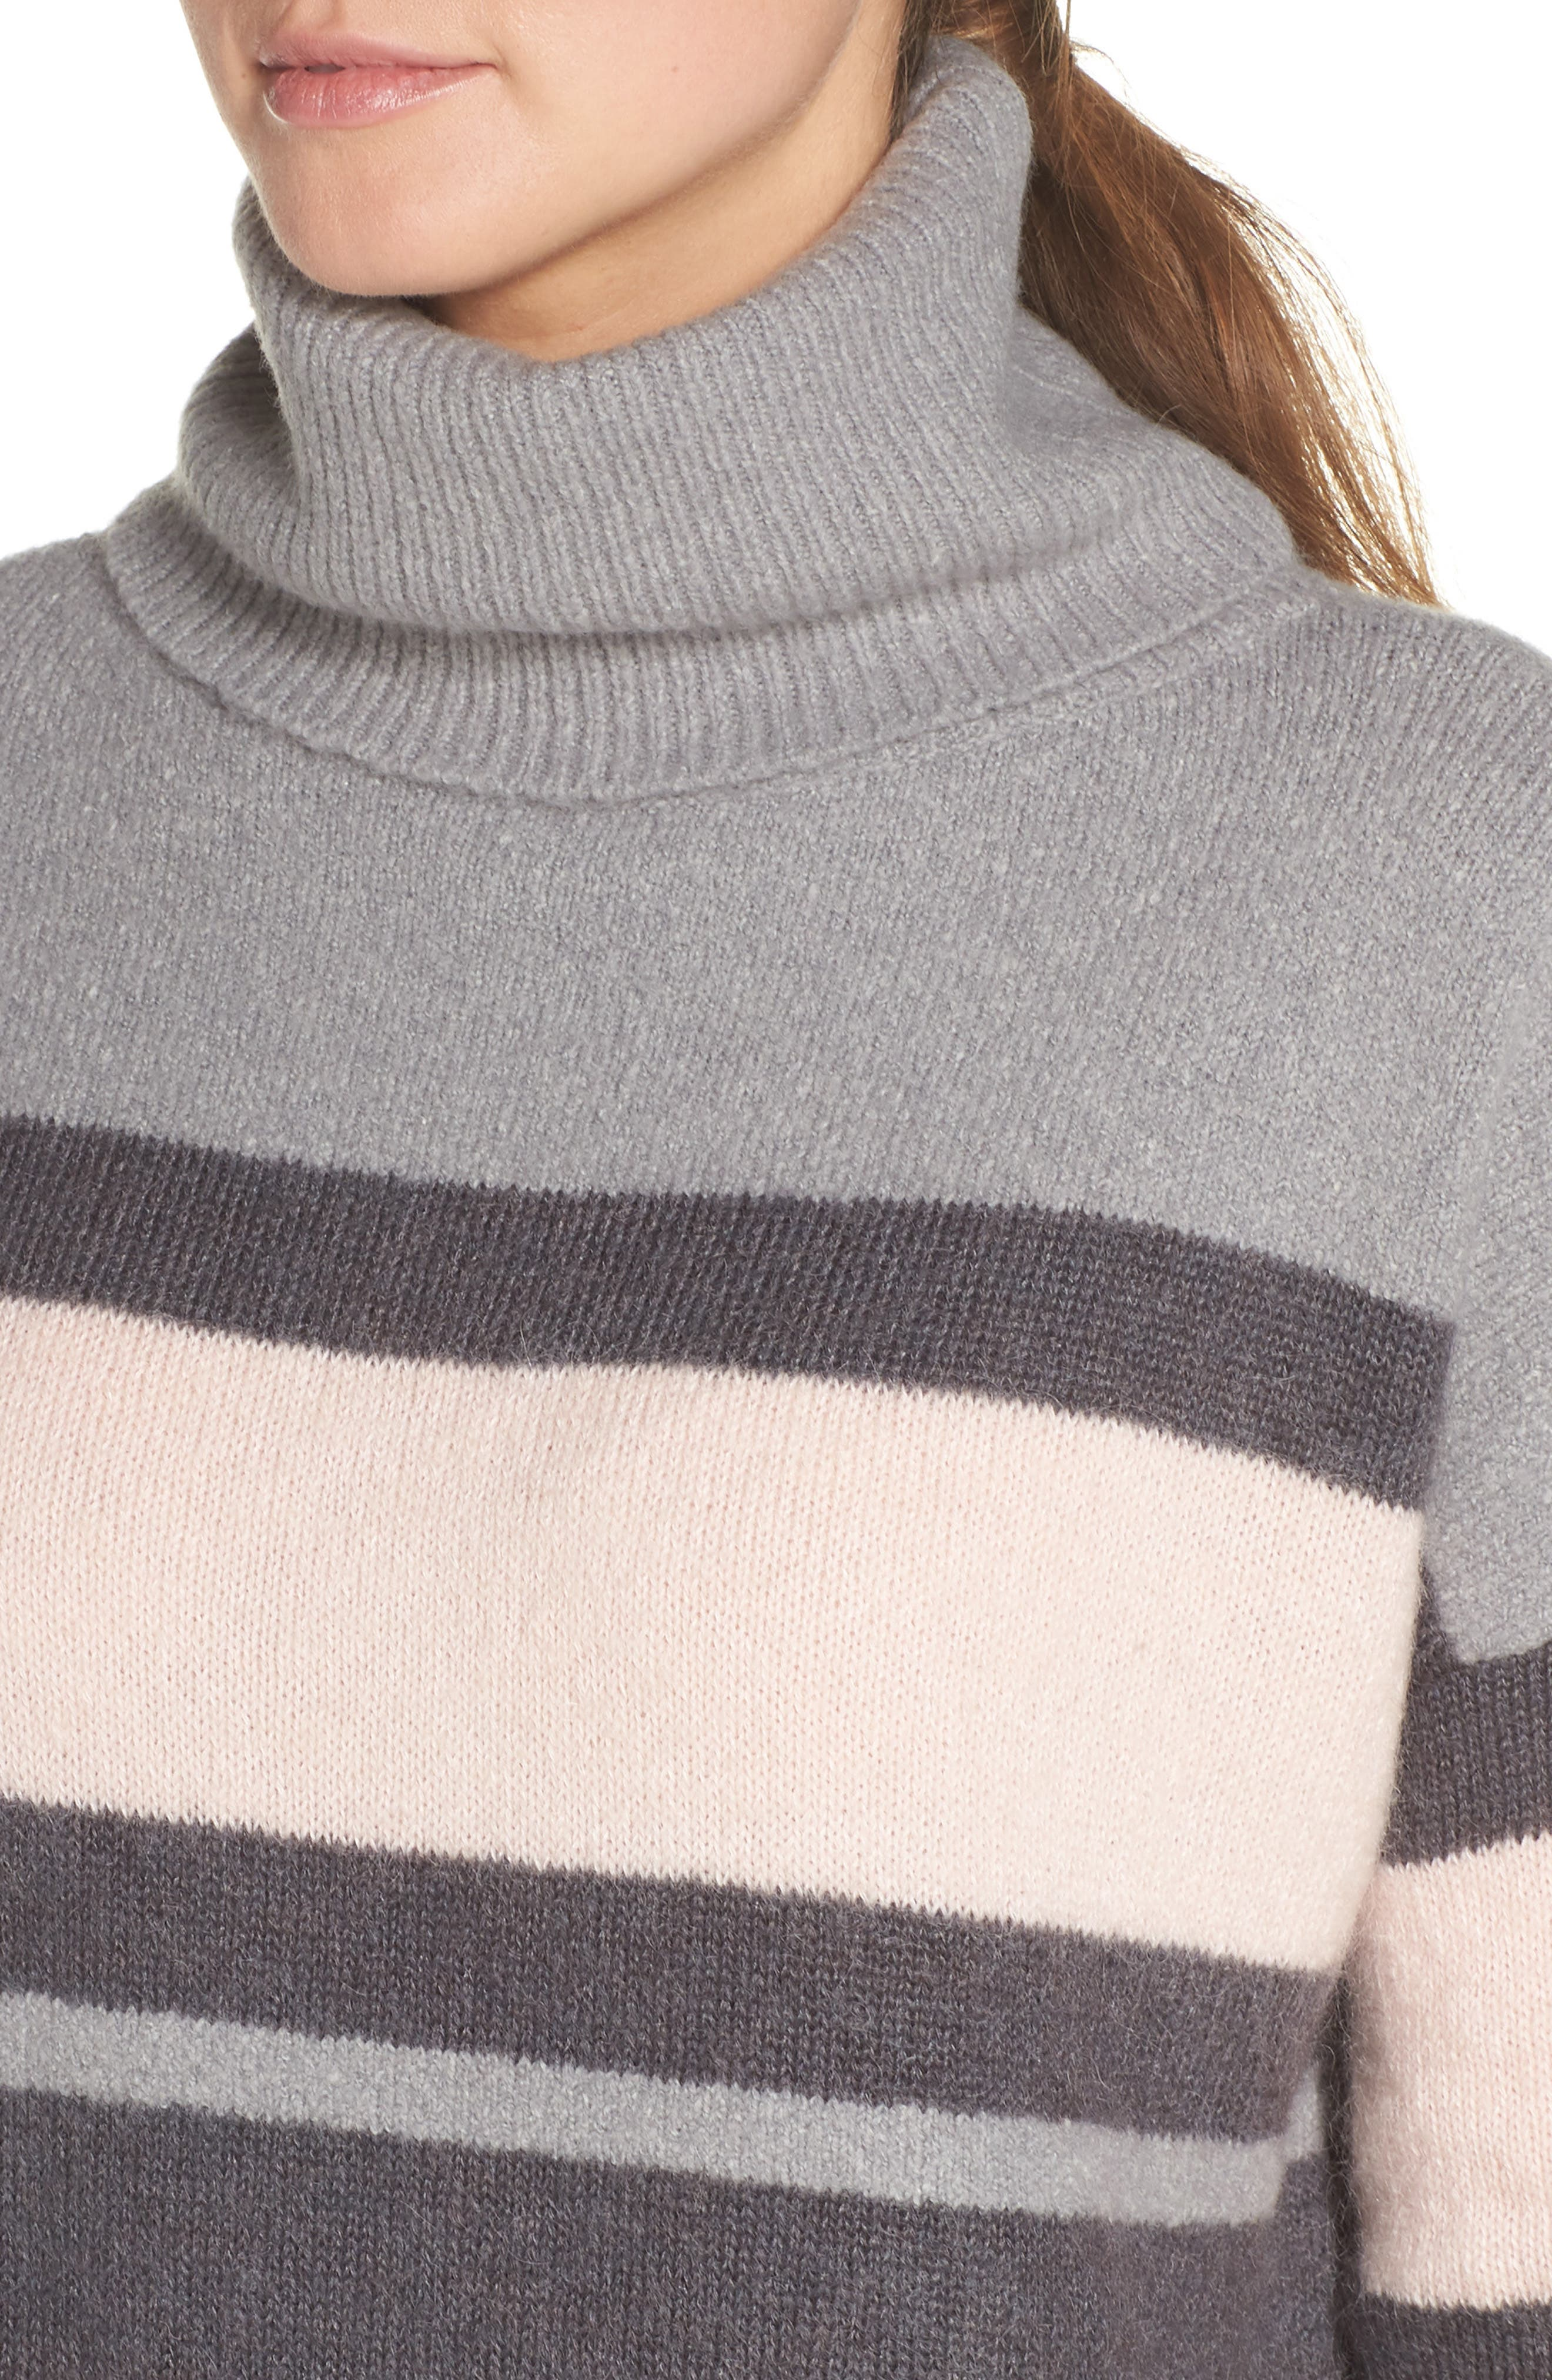 SWEATY BETTY,                             Bloomsbury Sweater,                             Alternate thumbnail 4, color,                             023